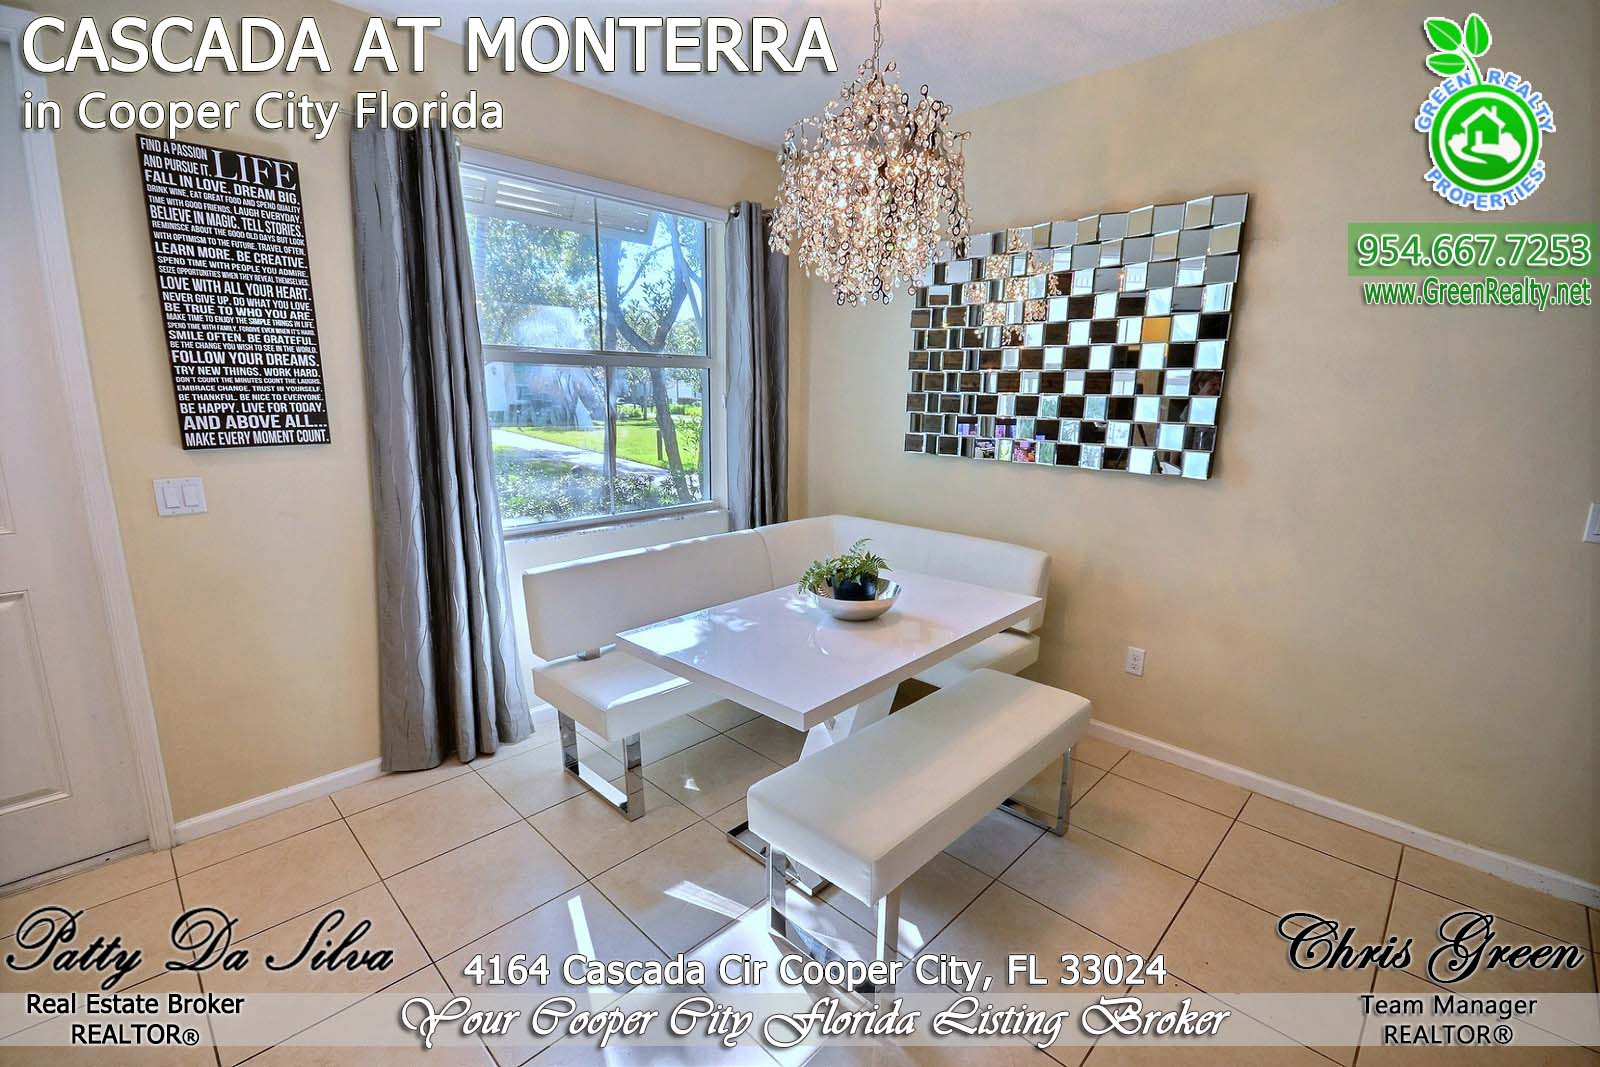 6 Cascada Monterra Homes For Sale